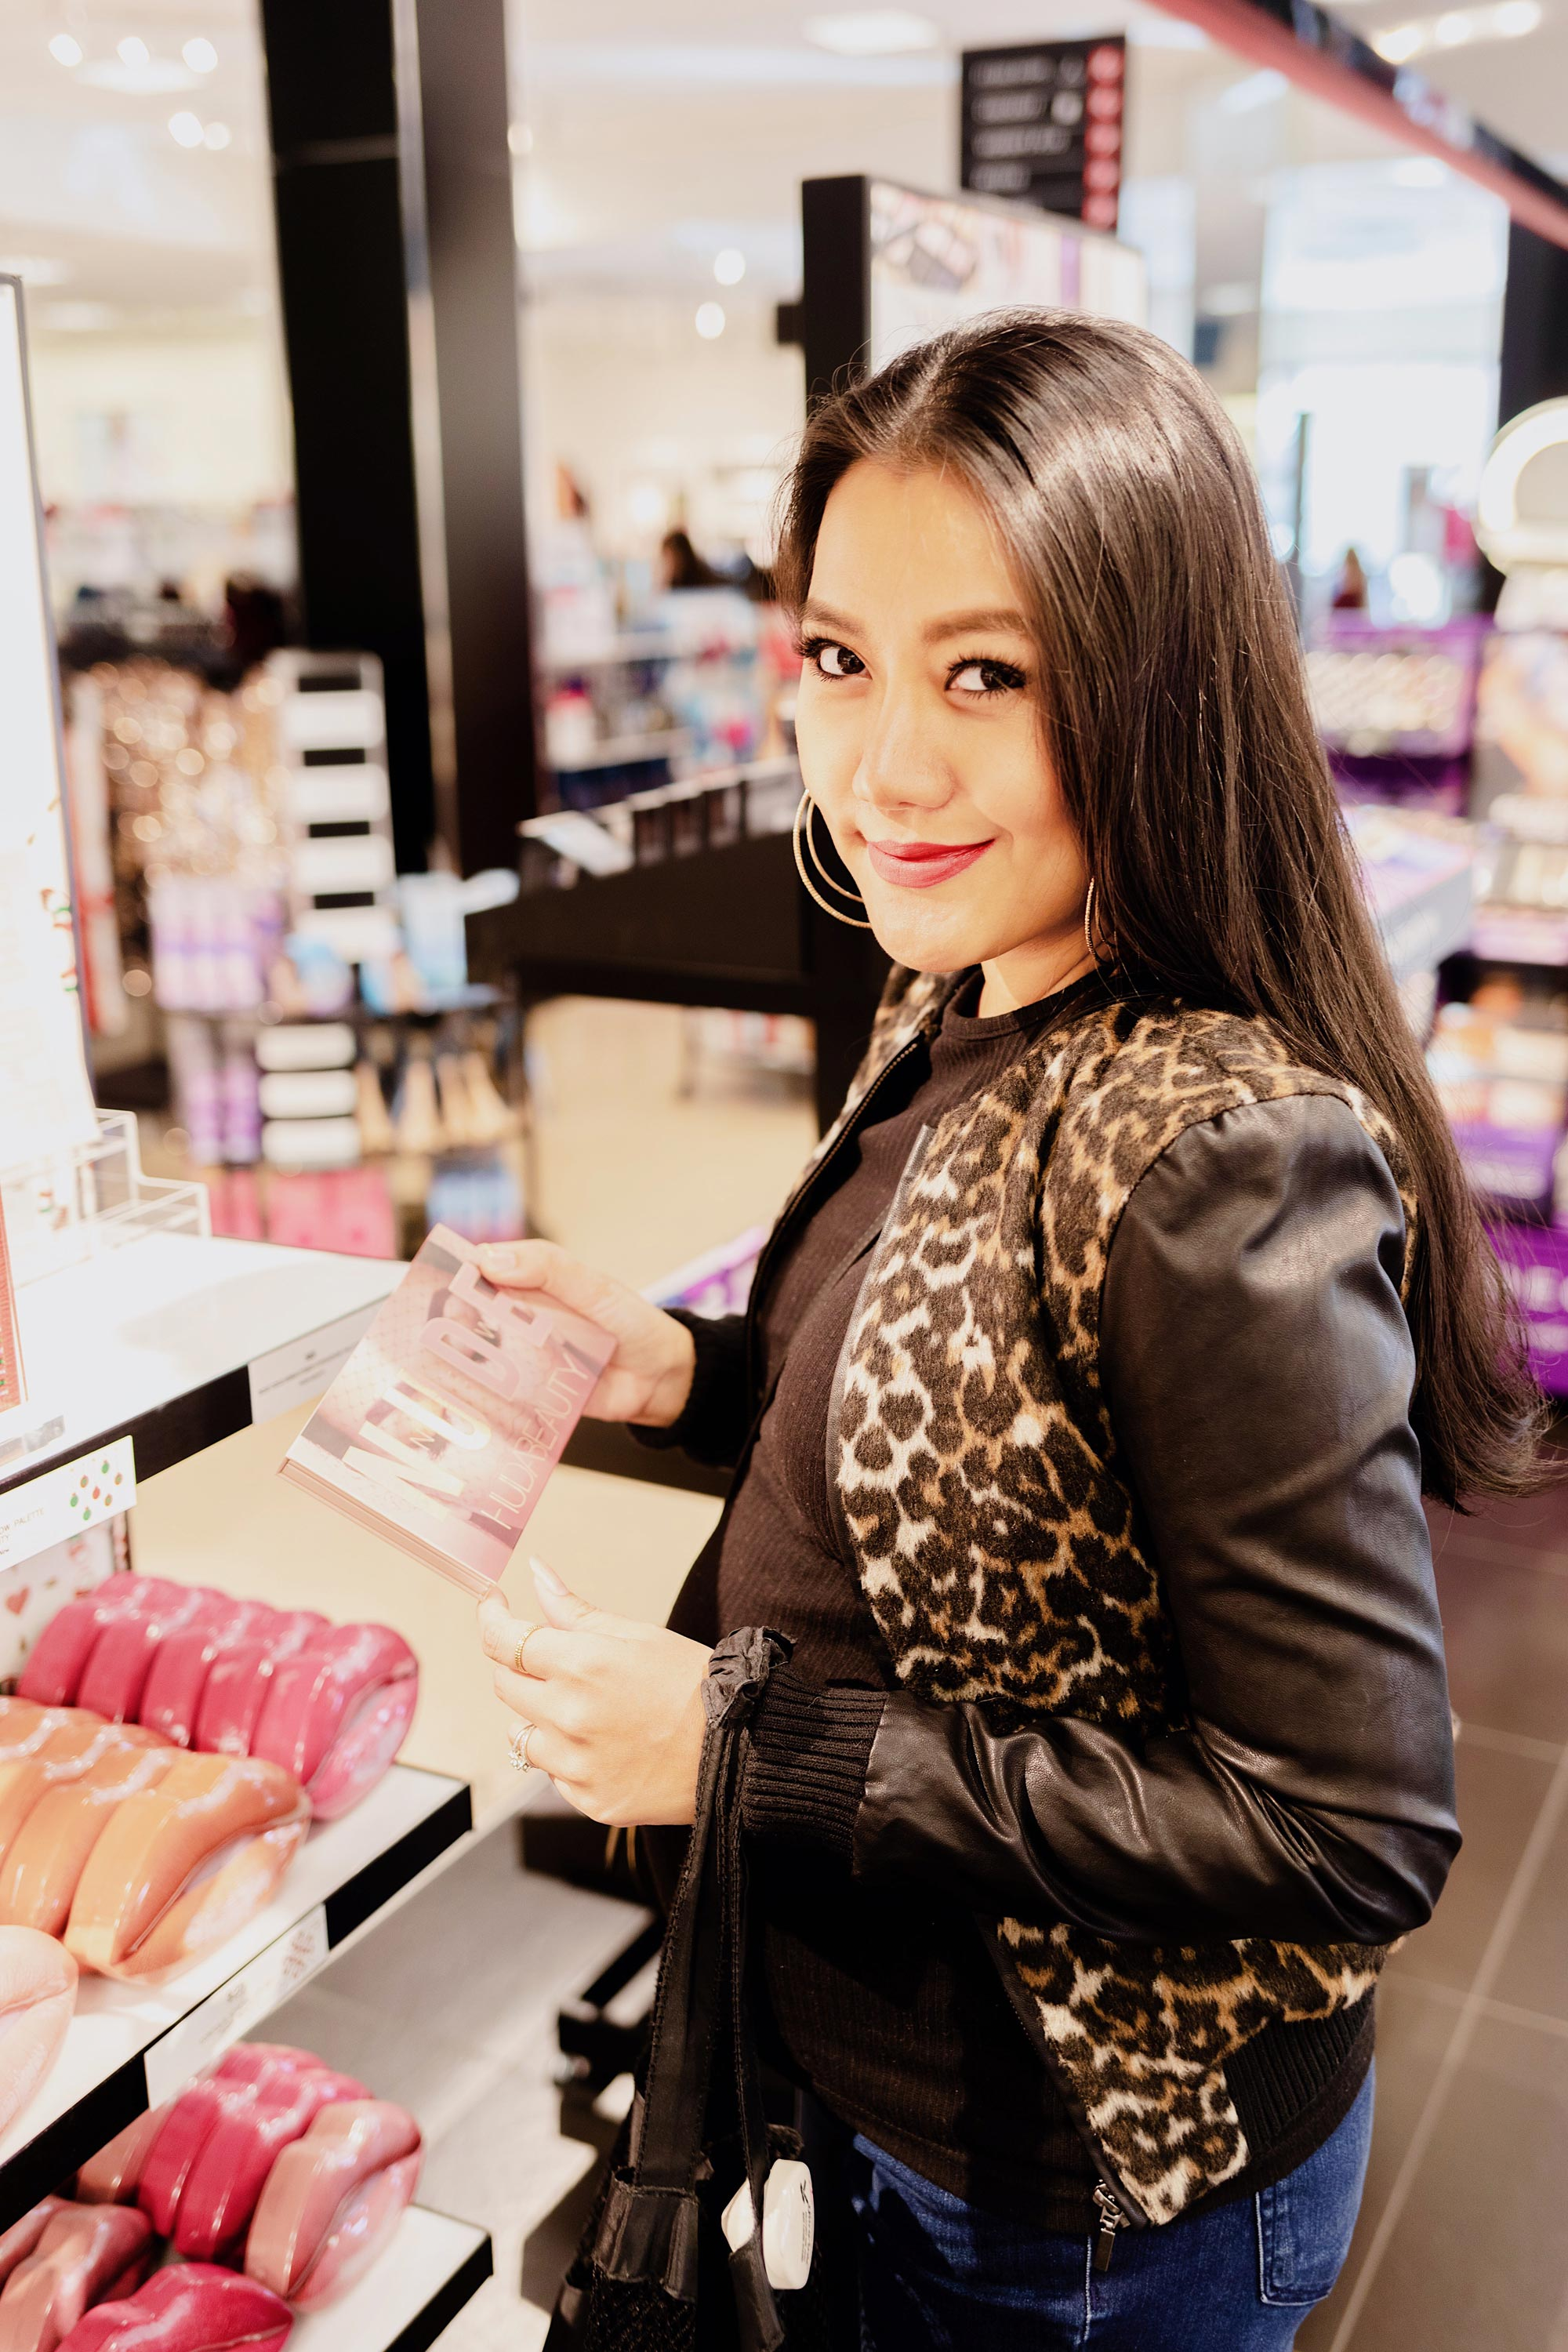 Sephora inside JCPenney Last Minute Gift Ideas Molly Larsen Beauty and Style Blogger Arizona Allaboutgoodvibes.com IG @thevibescloset